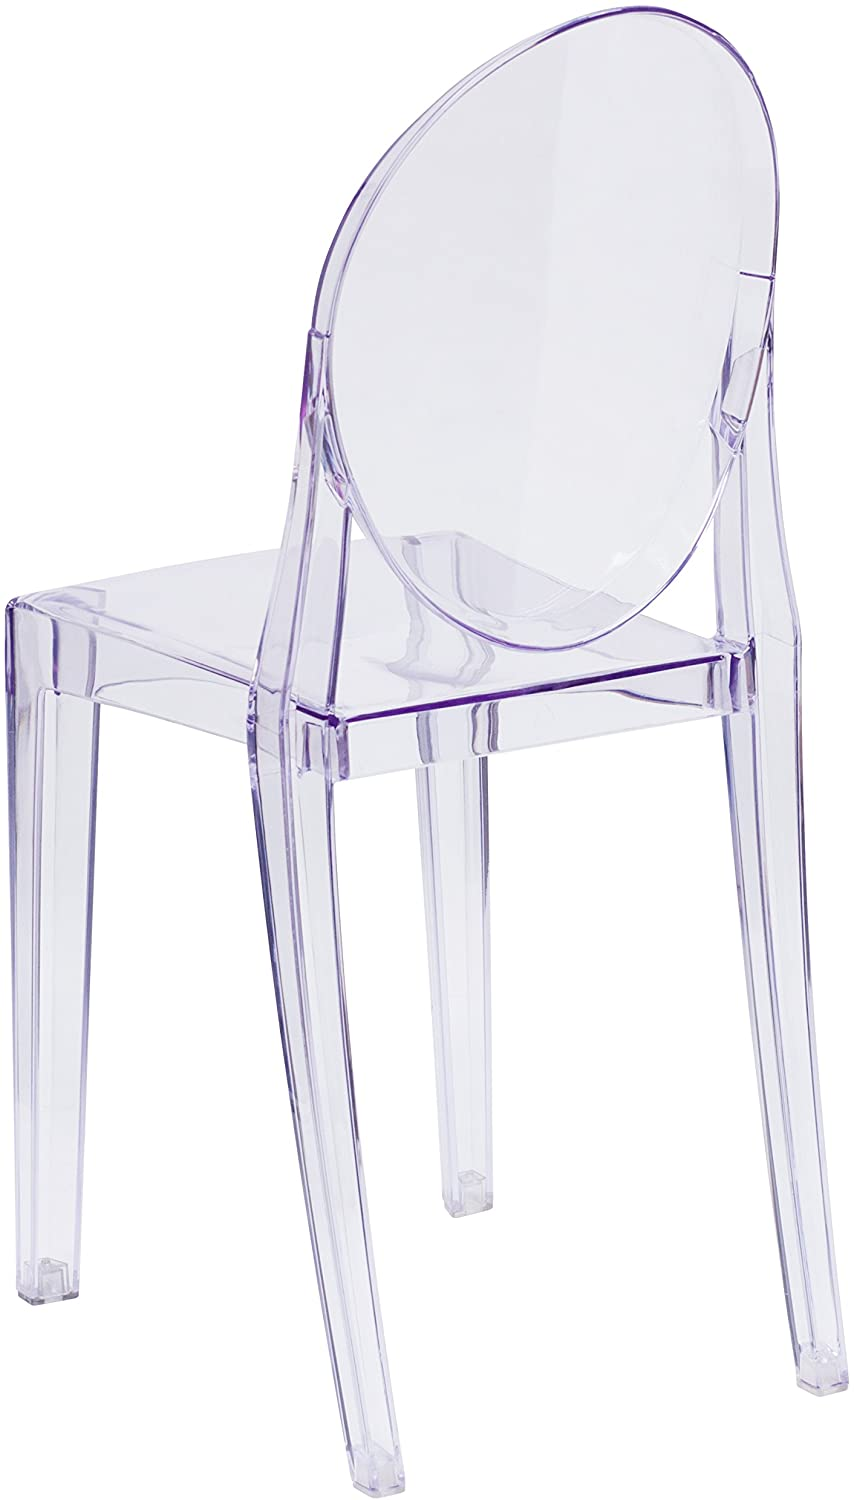 Set of 6 Dining Chairs Transparent Crystal Ghost Chair with Oval Back Modern Makeup Dressing Chair Stackable Garden Chairs Set 4